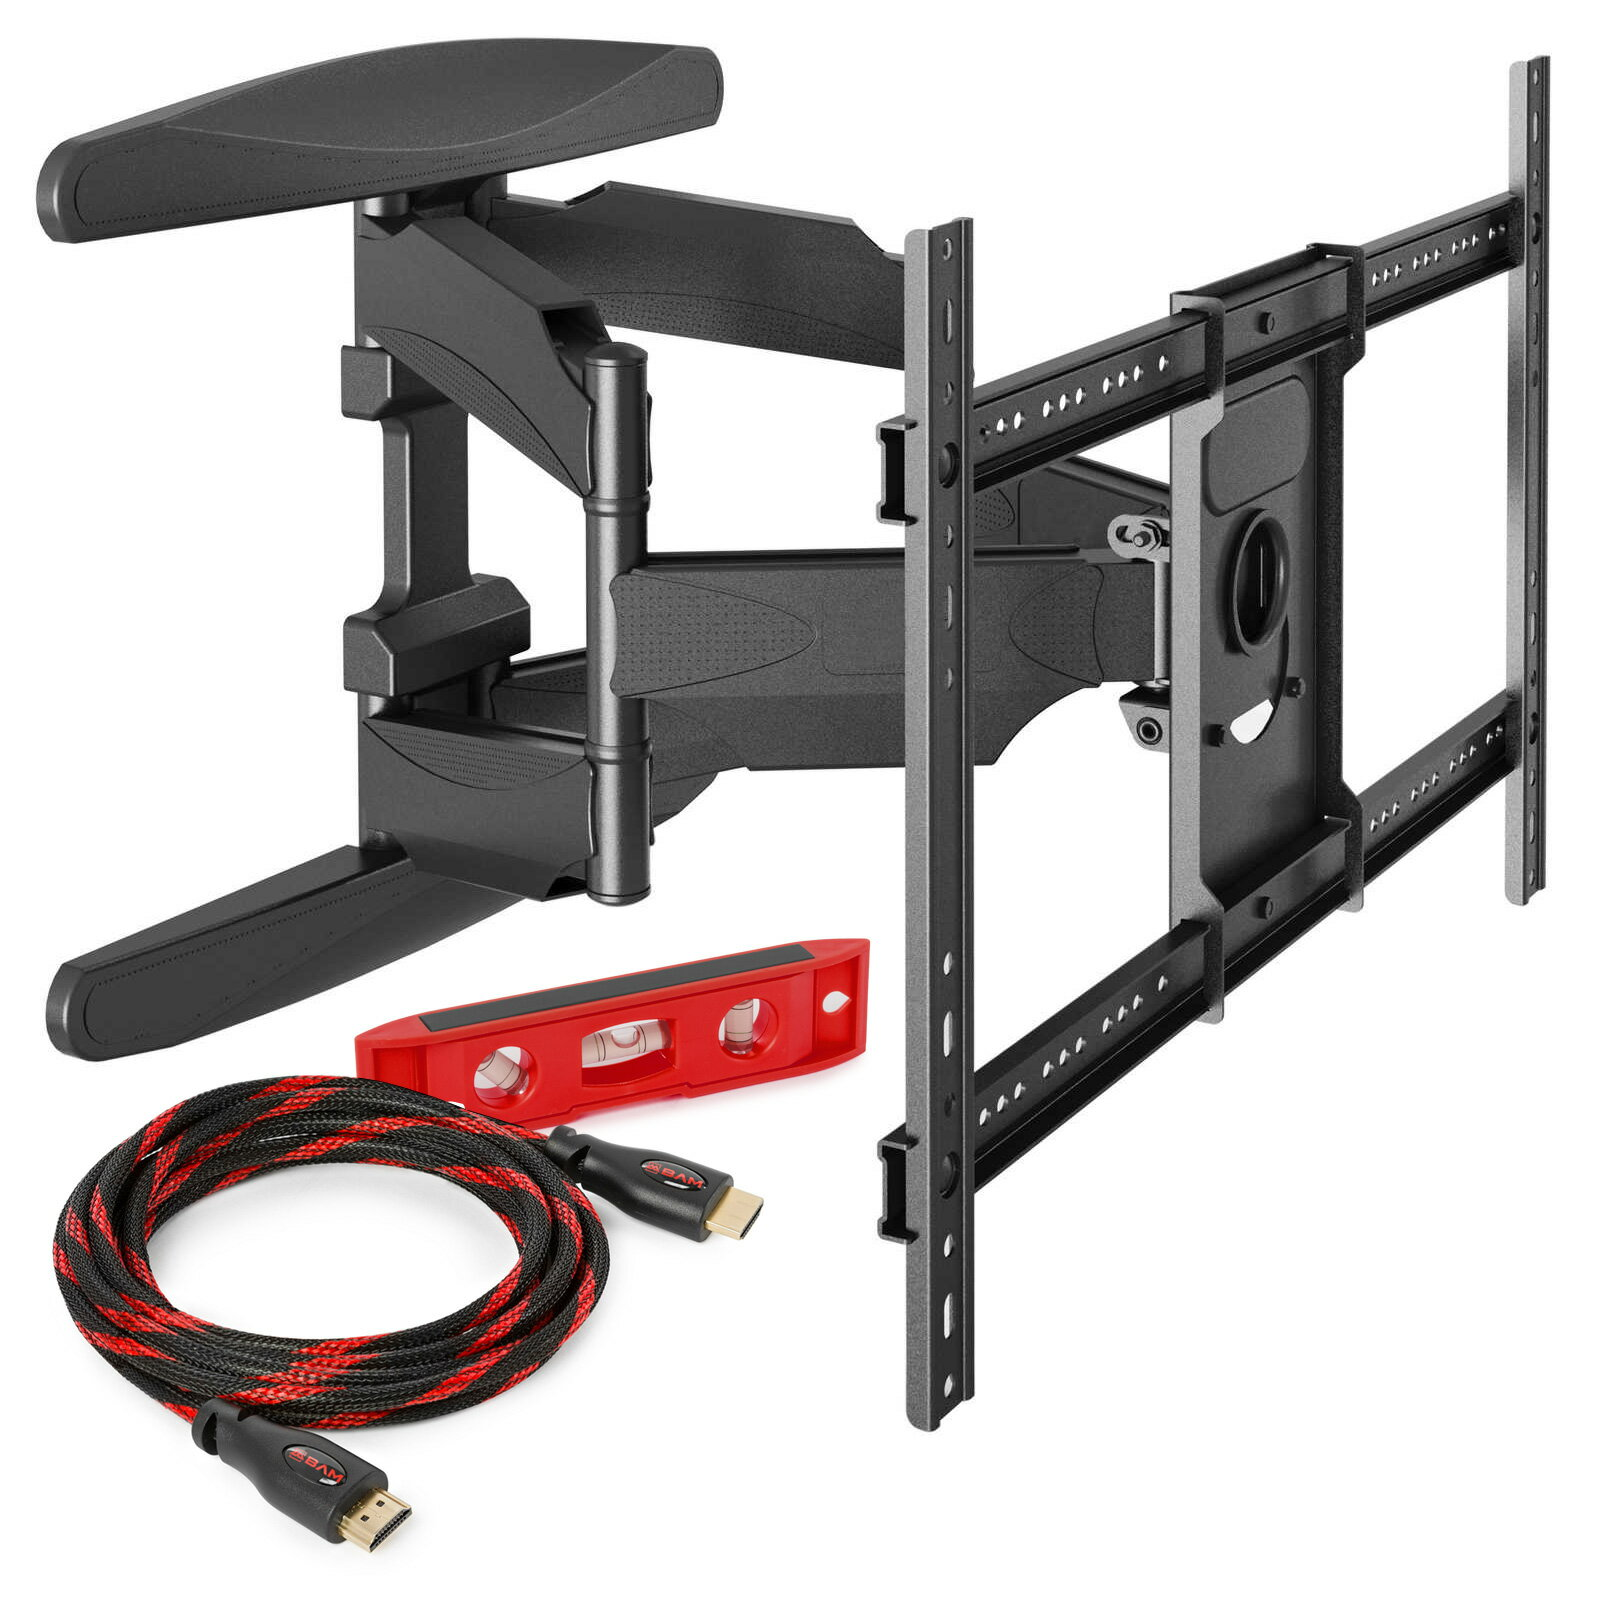 LCD TV Wall Mount Bracket Full Motion Swing Out Tilt and Swivel Articulating Arm